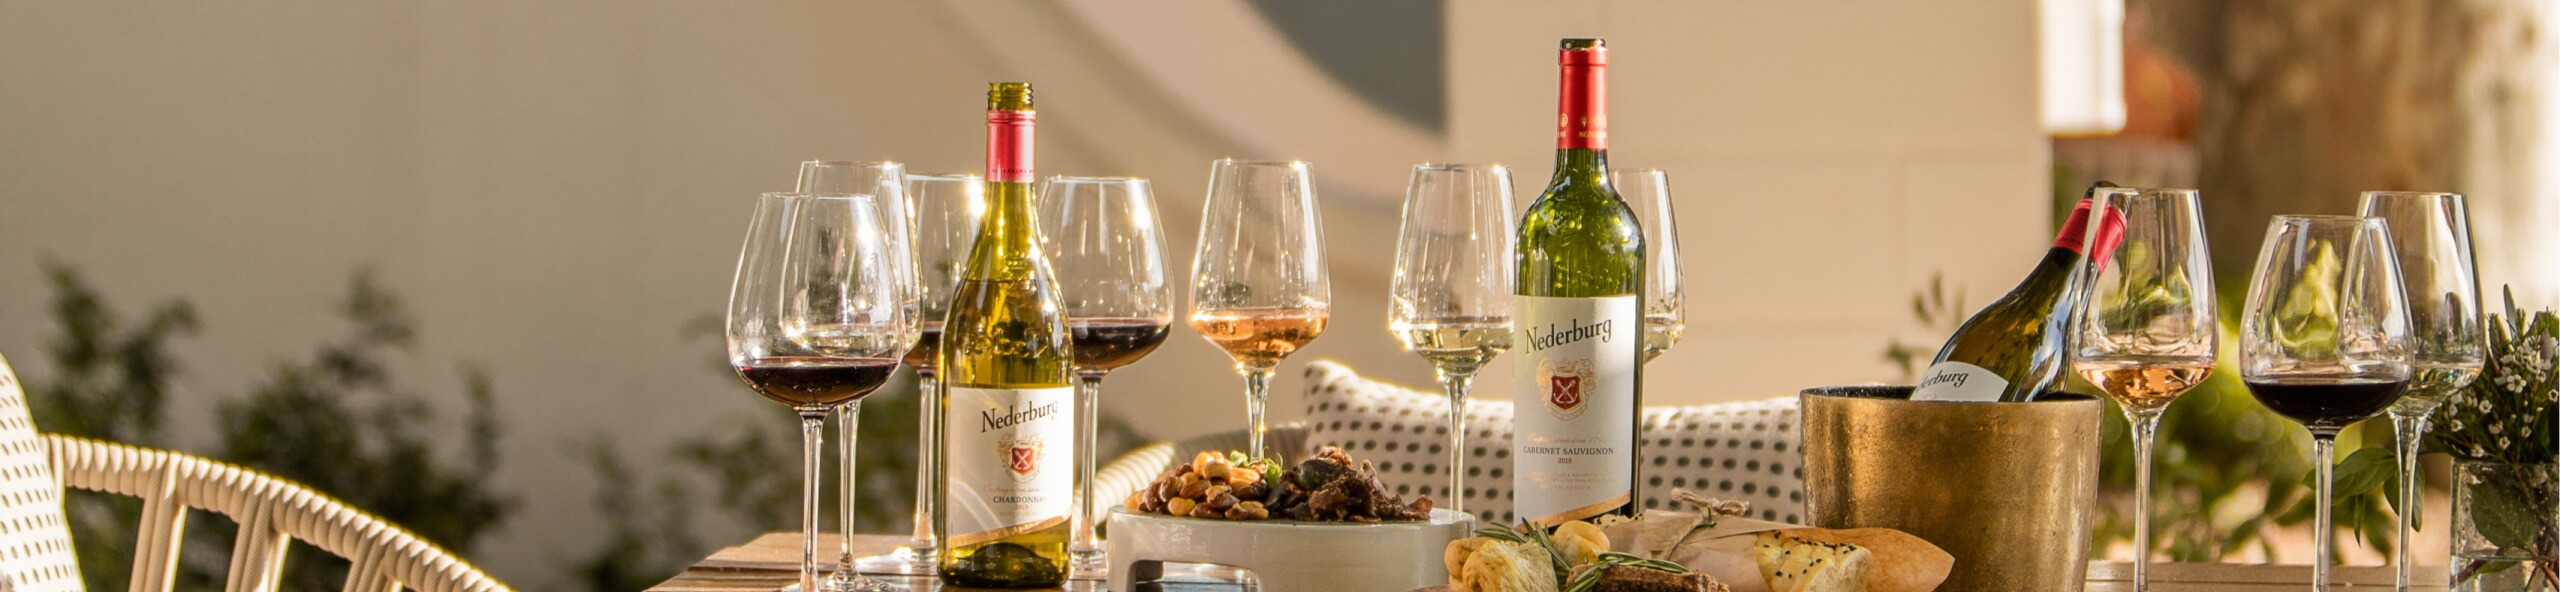 Nederburg Wine poured into glasses, set on a lovely table with matching food.